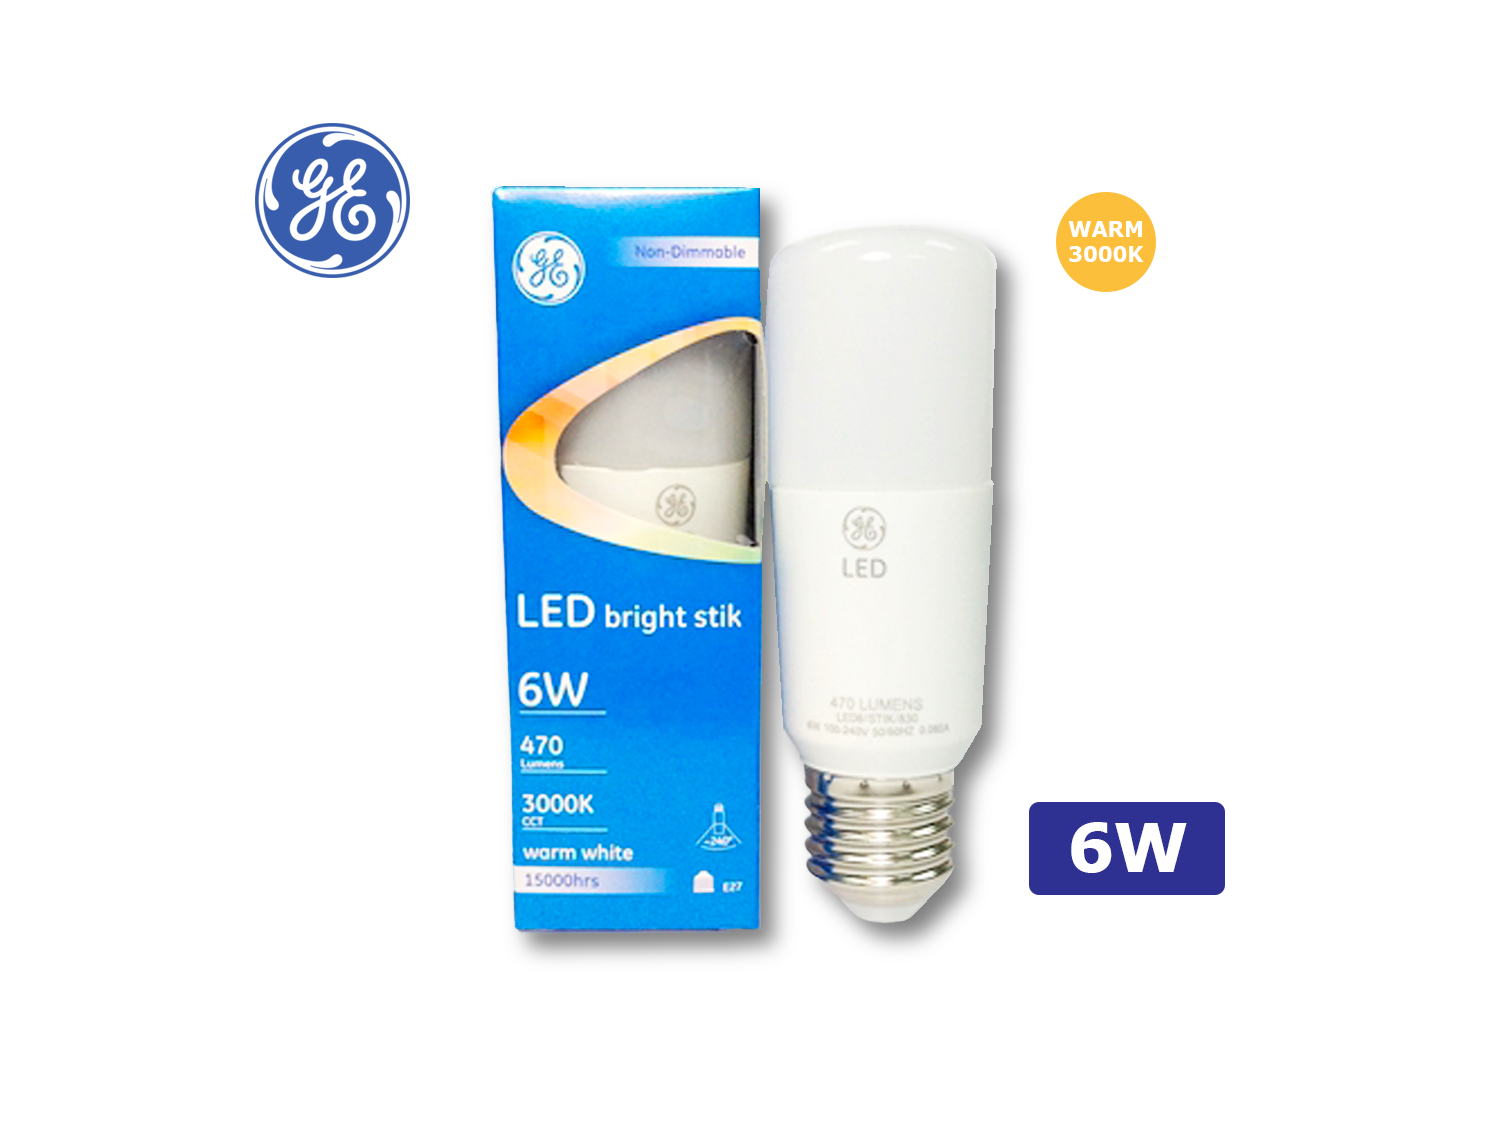 GE 6W/LED Brightstik E27/3000K(Warm White)/100-240V ; SKU: 74349T, LED6/STIK/830/100-240V/E27/G2